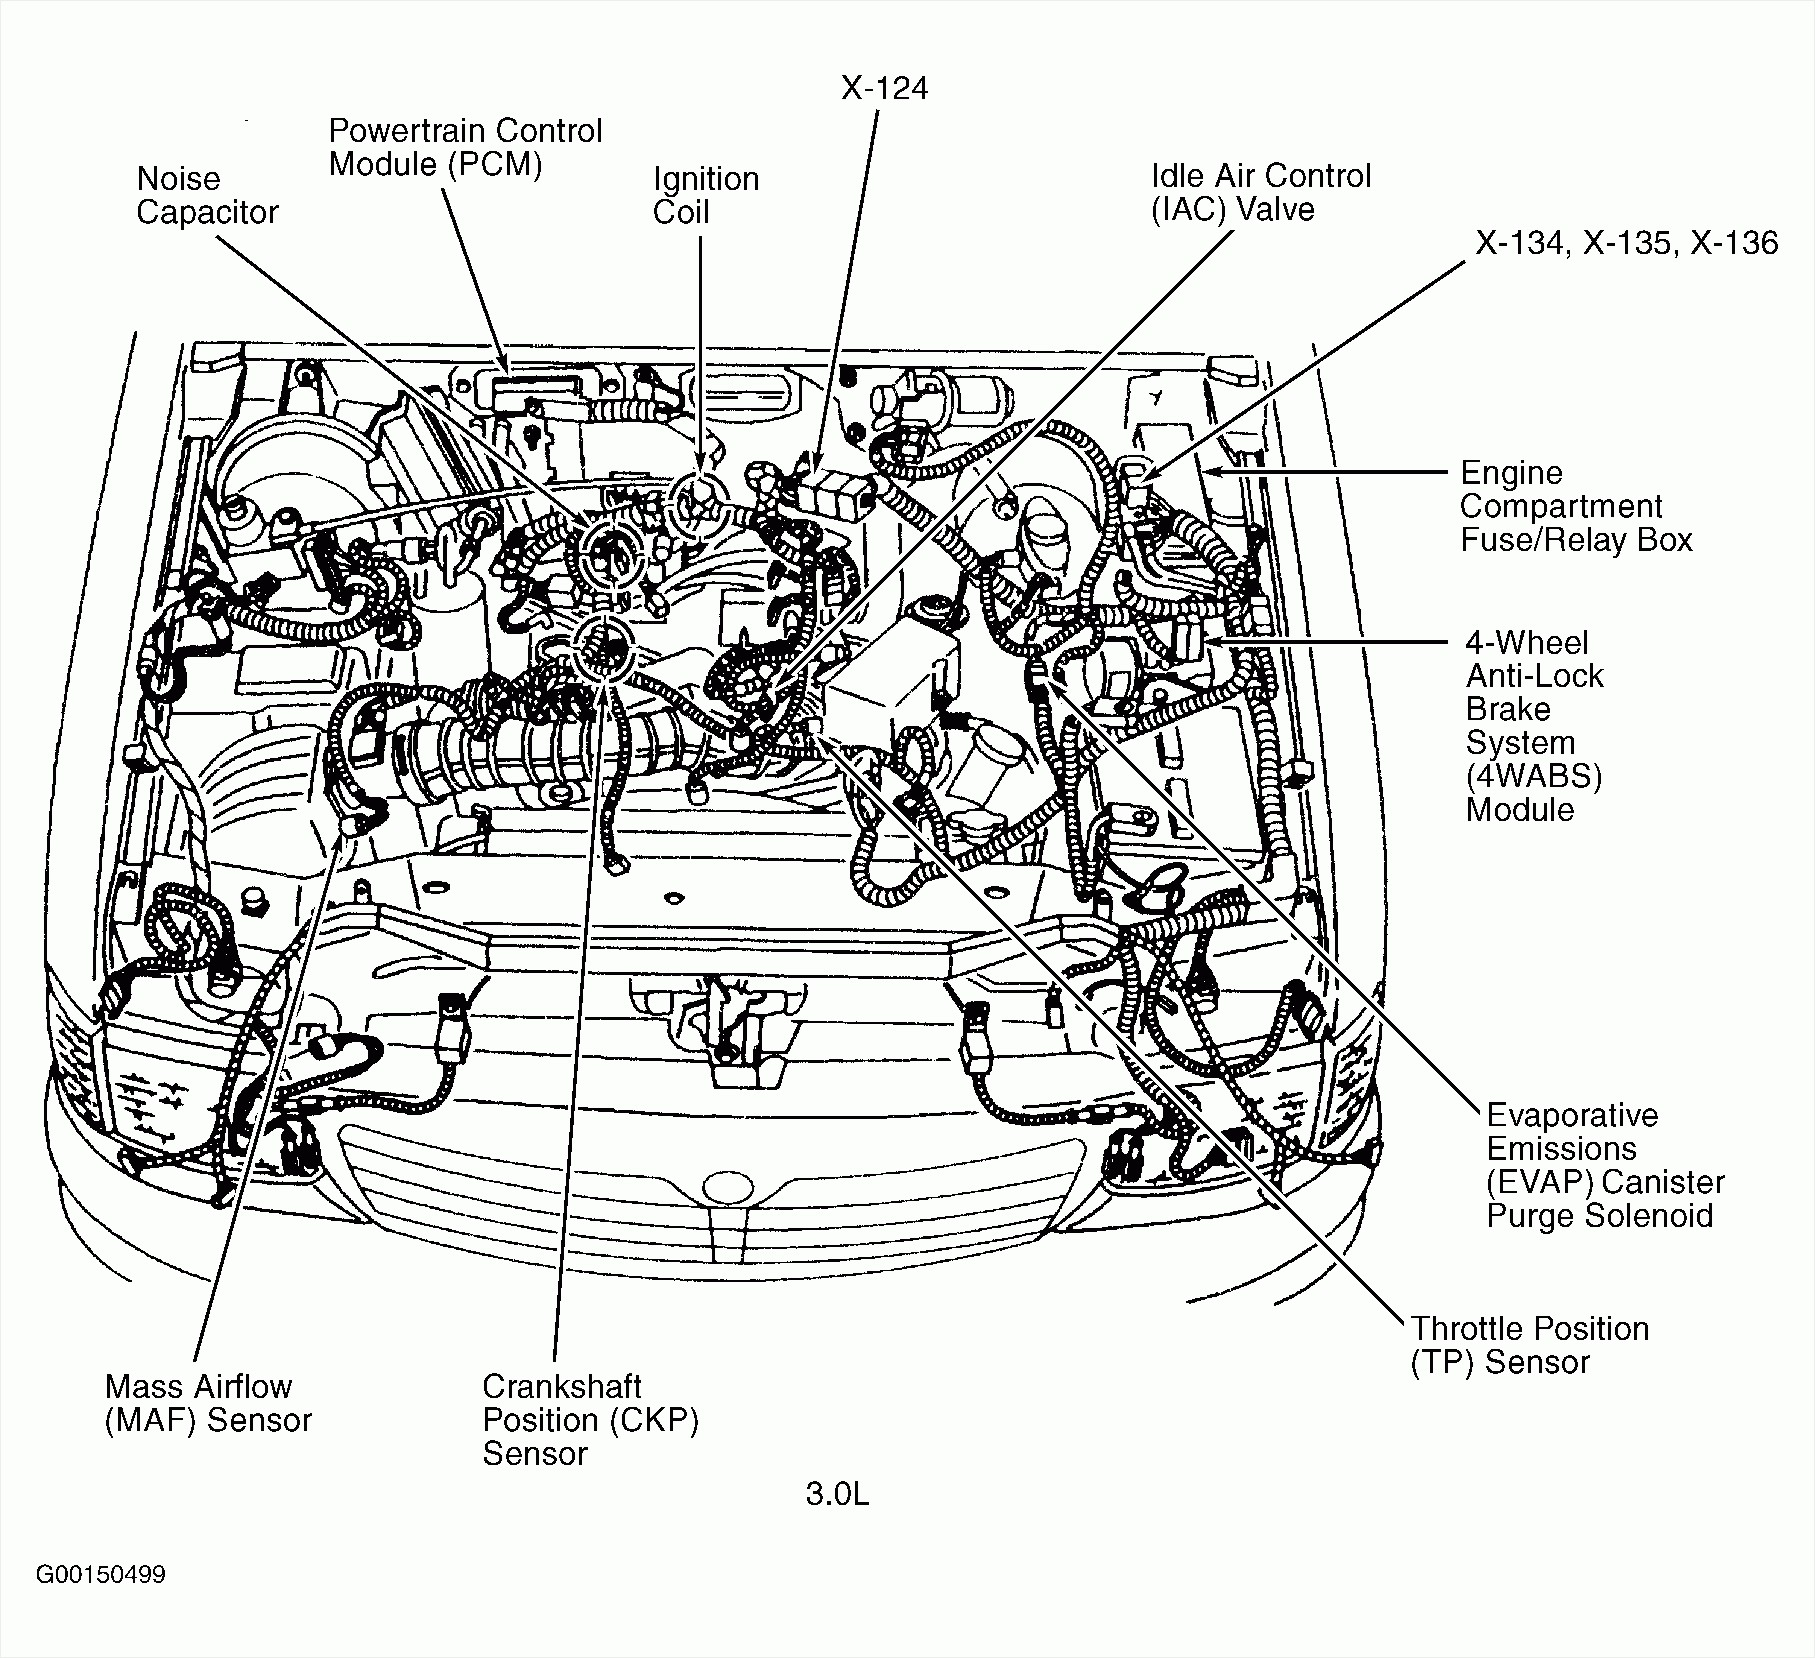 hight resolution of 2001 vw beetle engine diagram wiring diagram preview 2001 new beetle engine diagram